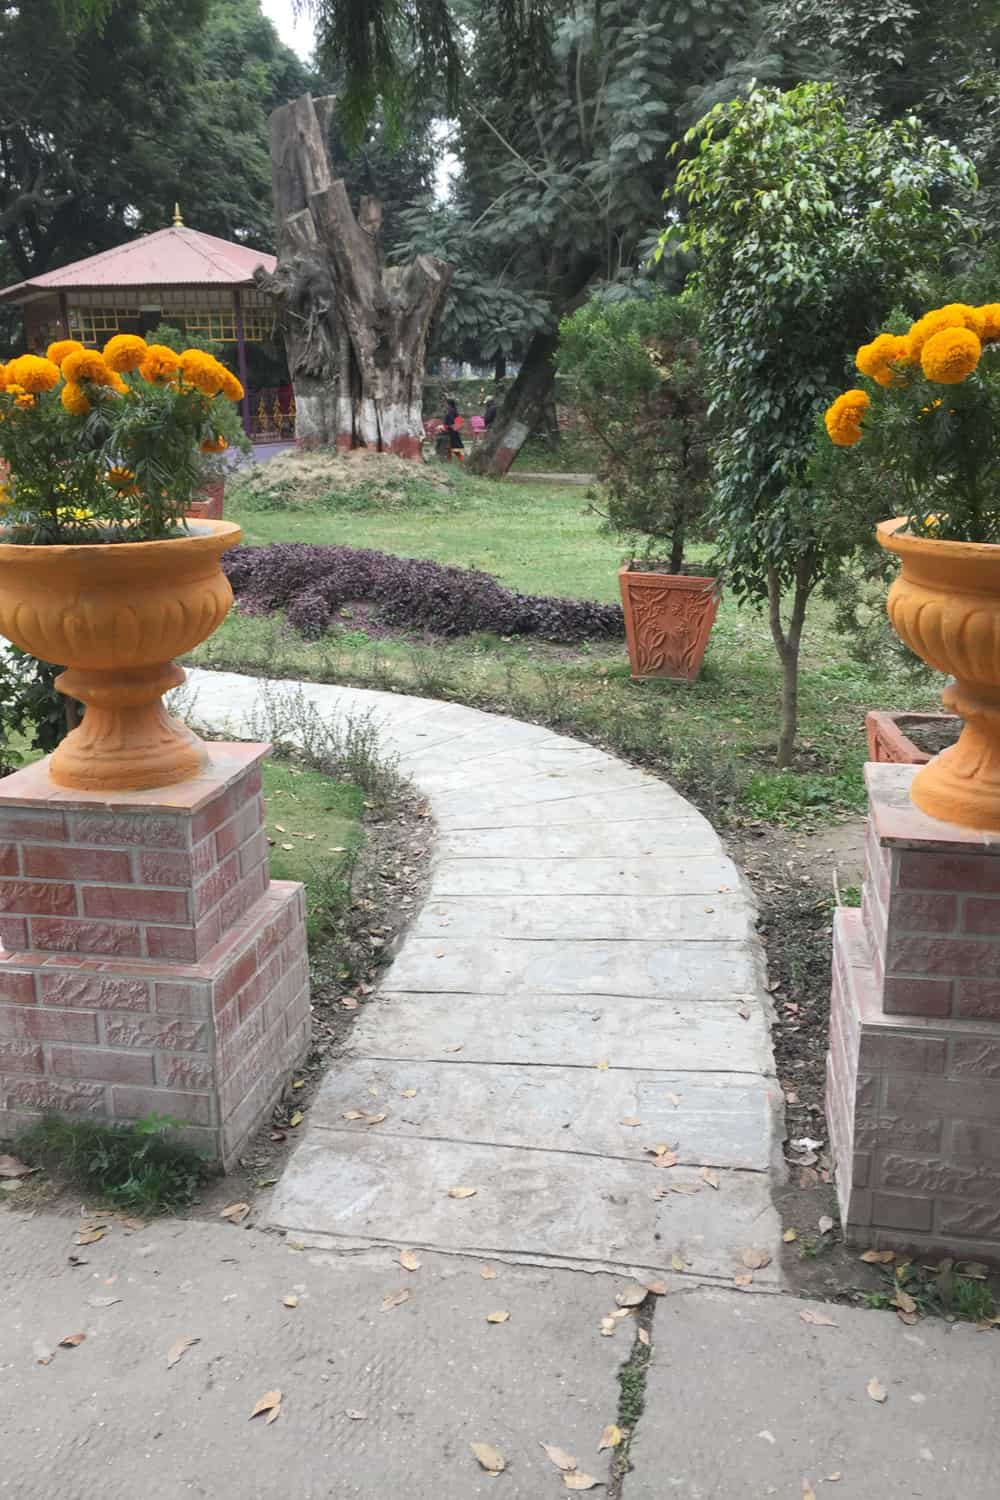 Pedestals and Flowers